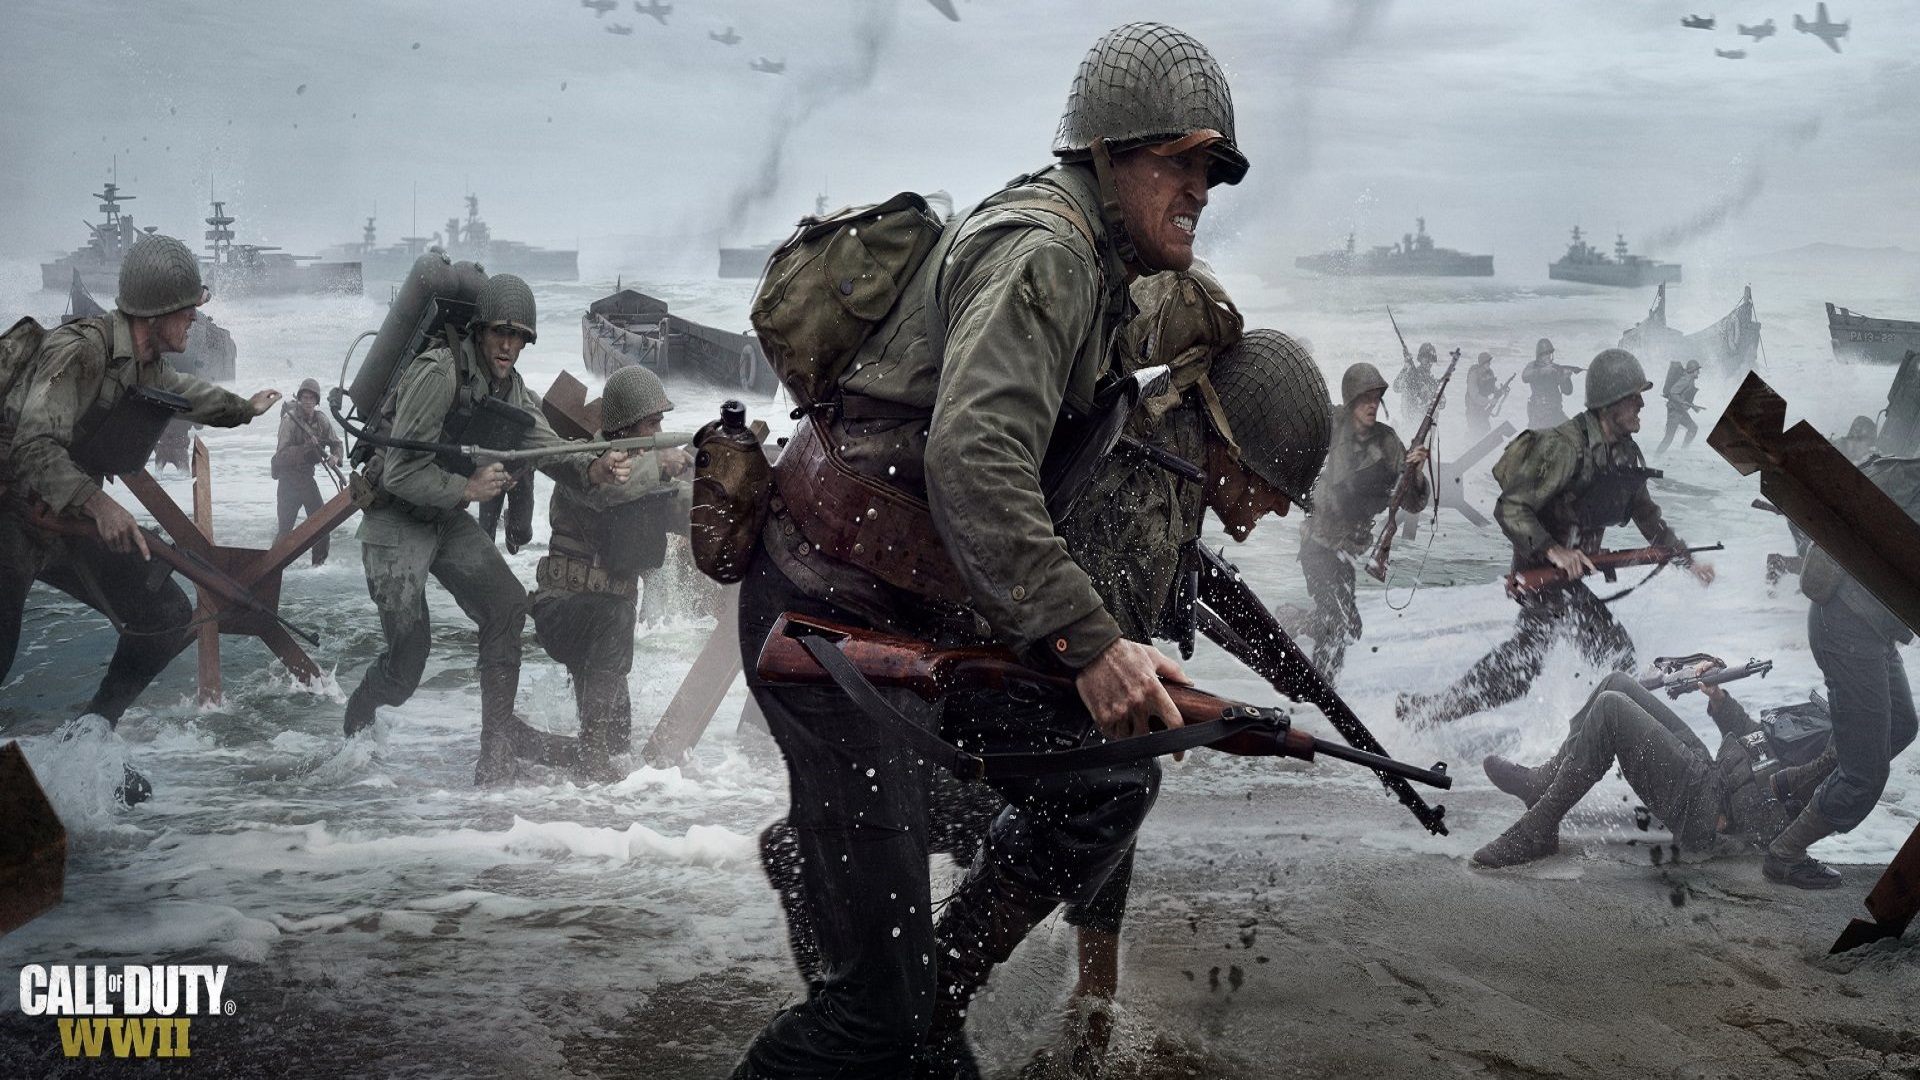 Call Of Duty Wwii Wallpaper: Download Call Of Duty (COD) WW2 HD Wallpapers